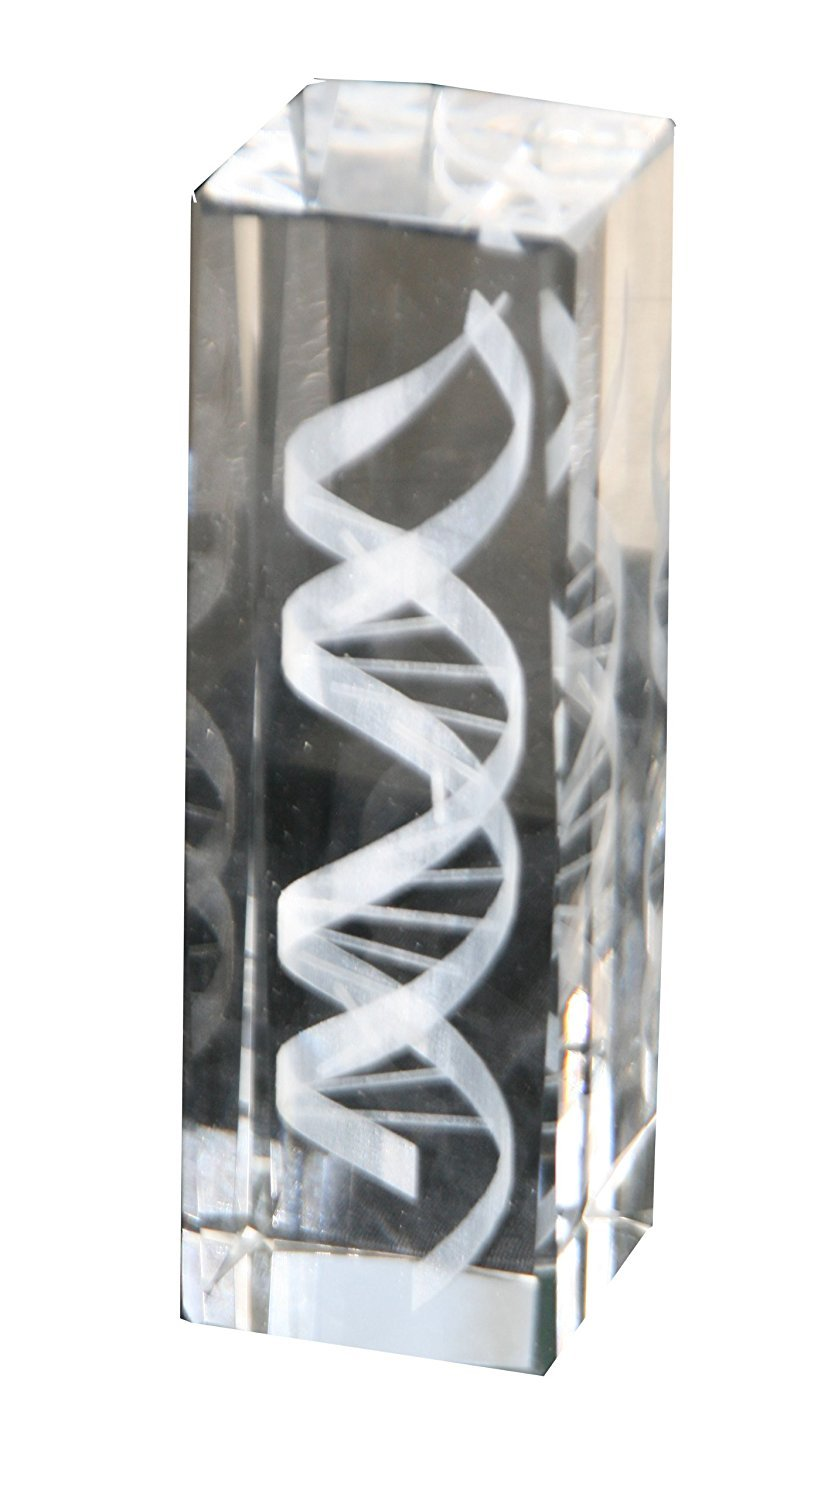 DNA Helix Crystal Statue (6 Inches in Height)